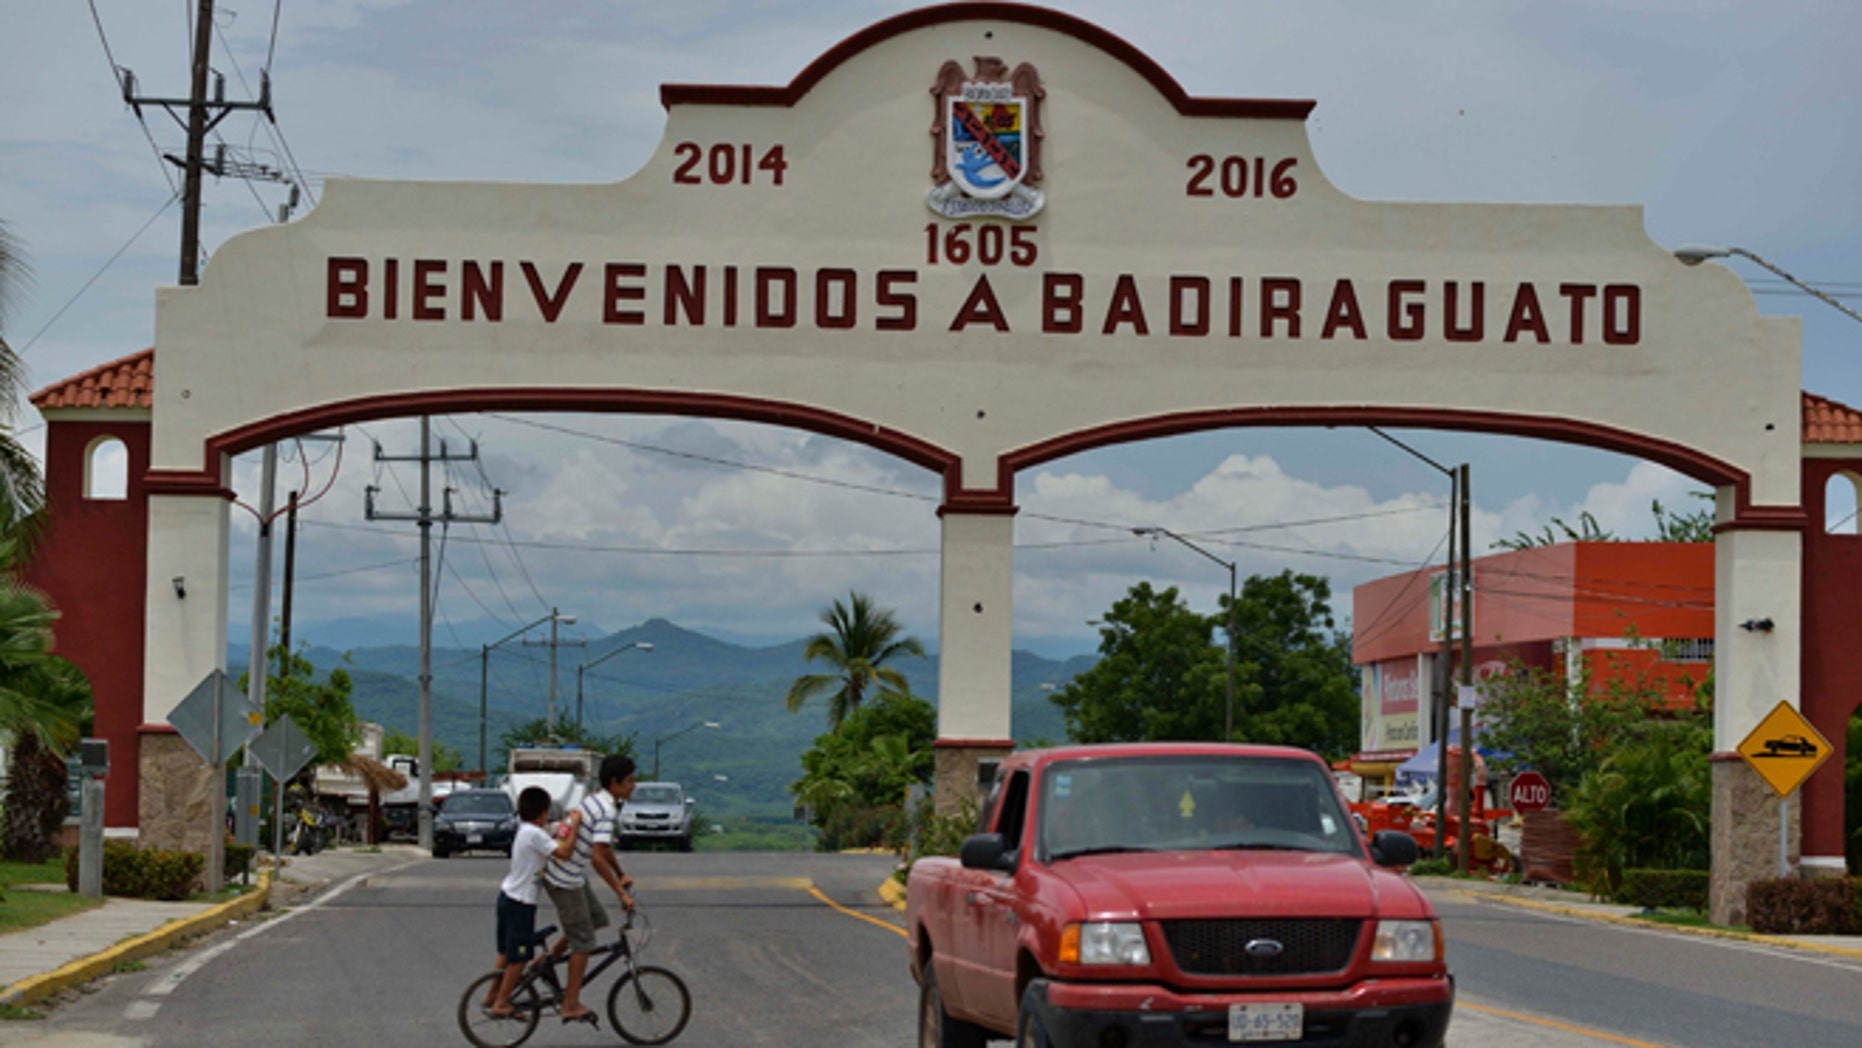 In this July 20, 2015 photo, a car drives past the entrance to the town of Badiraguato, Mexico.